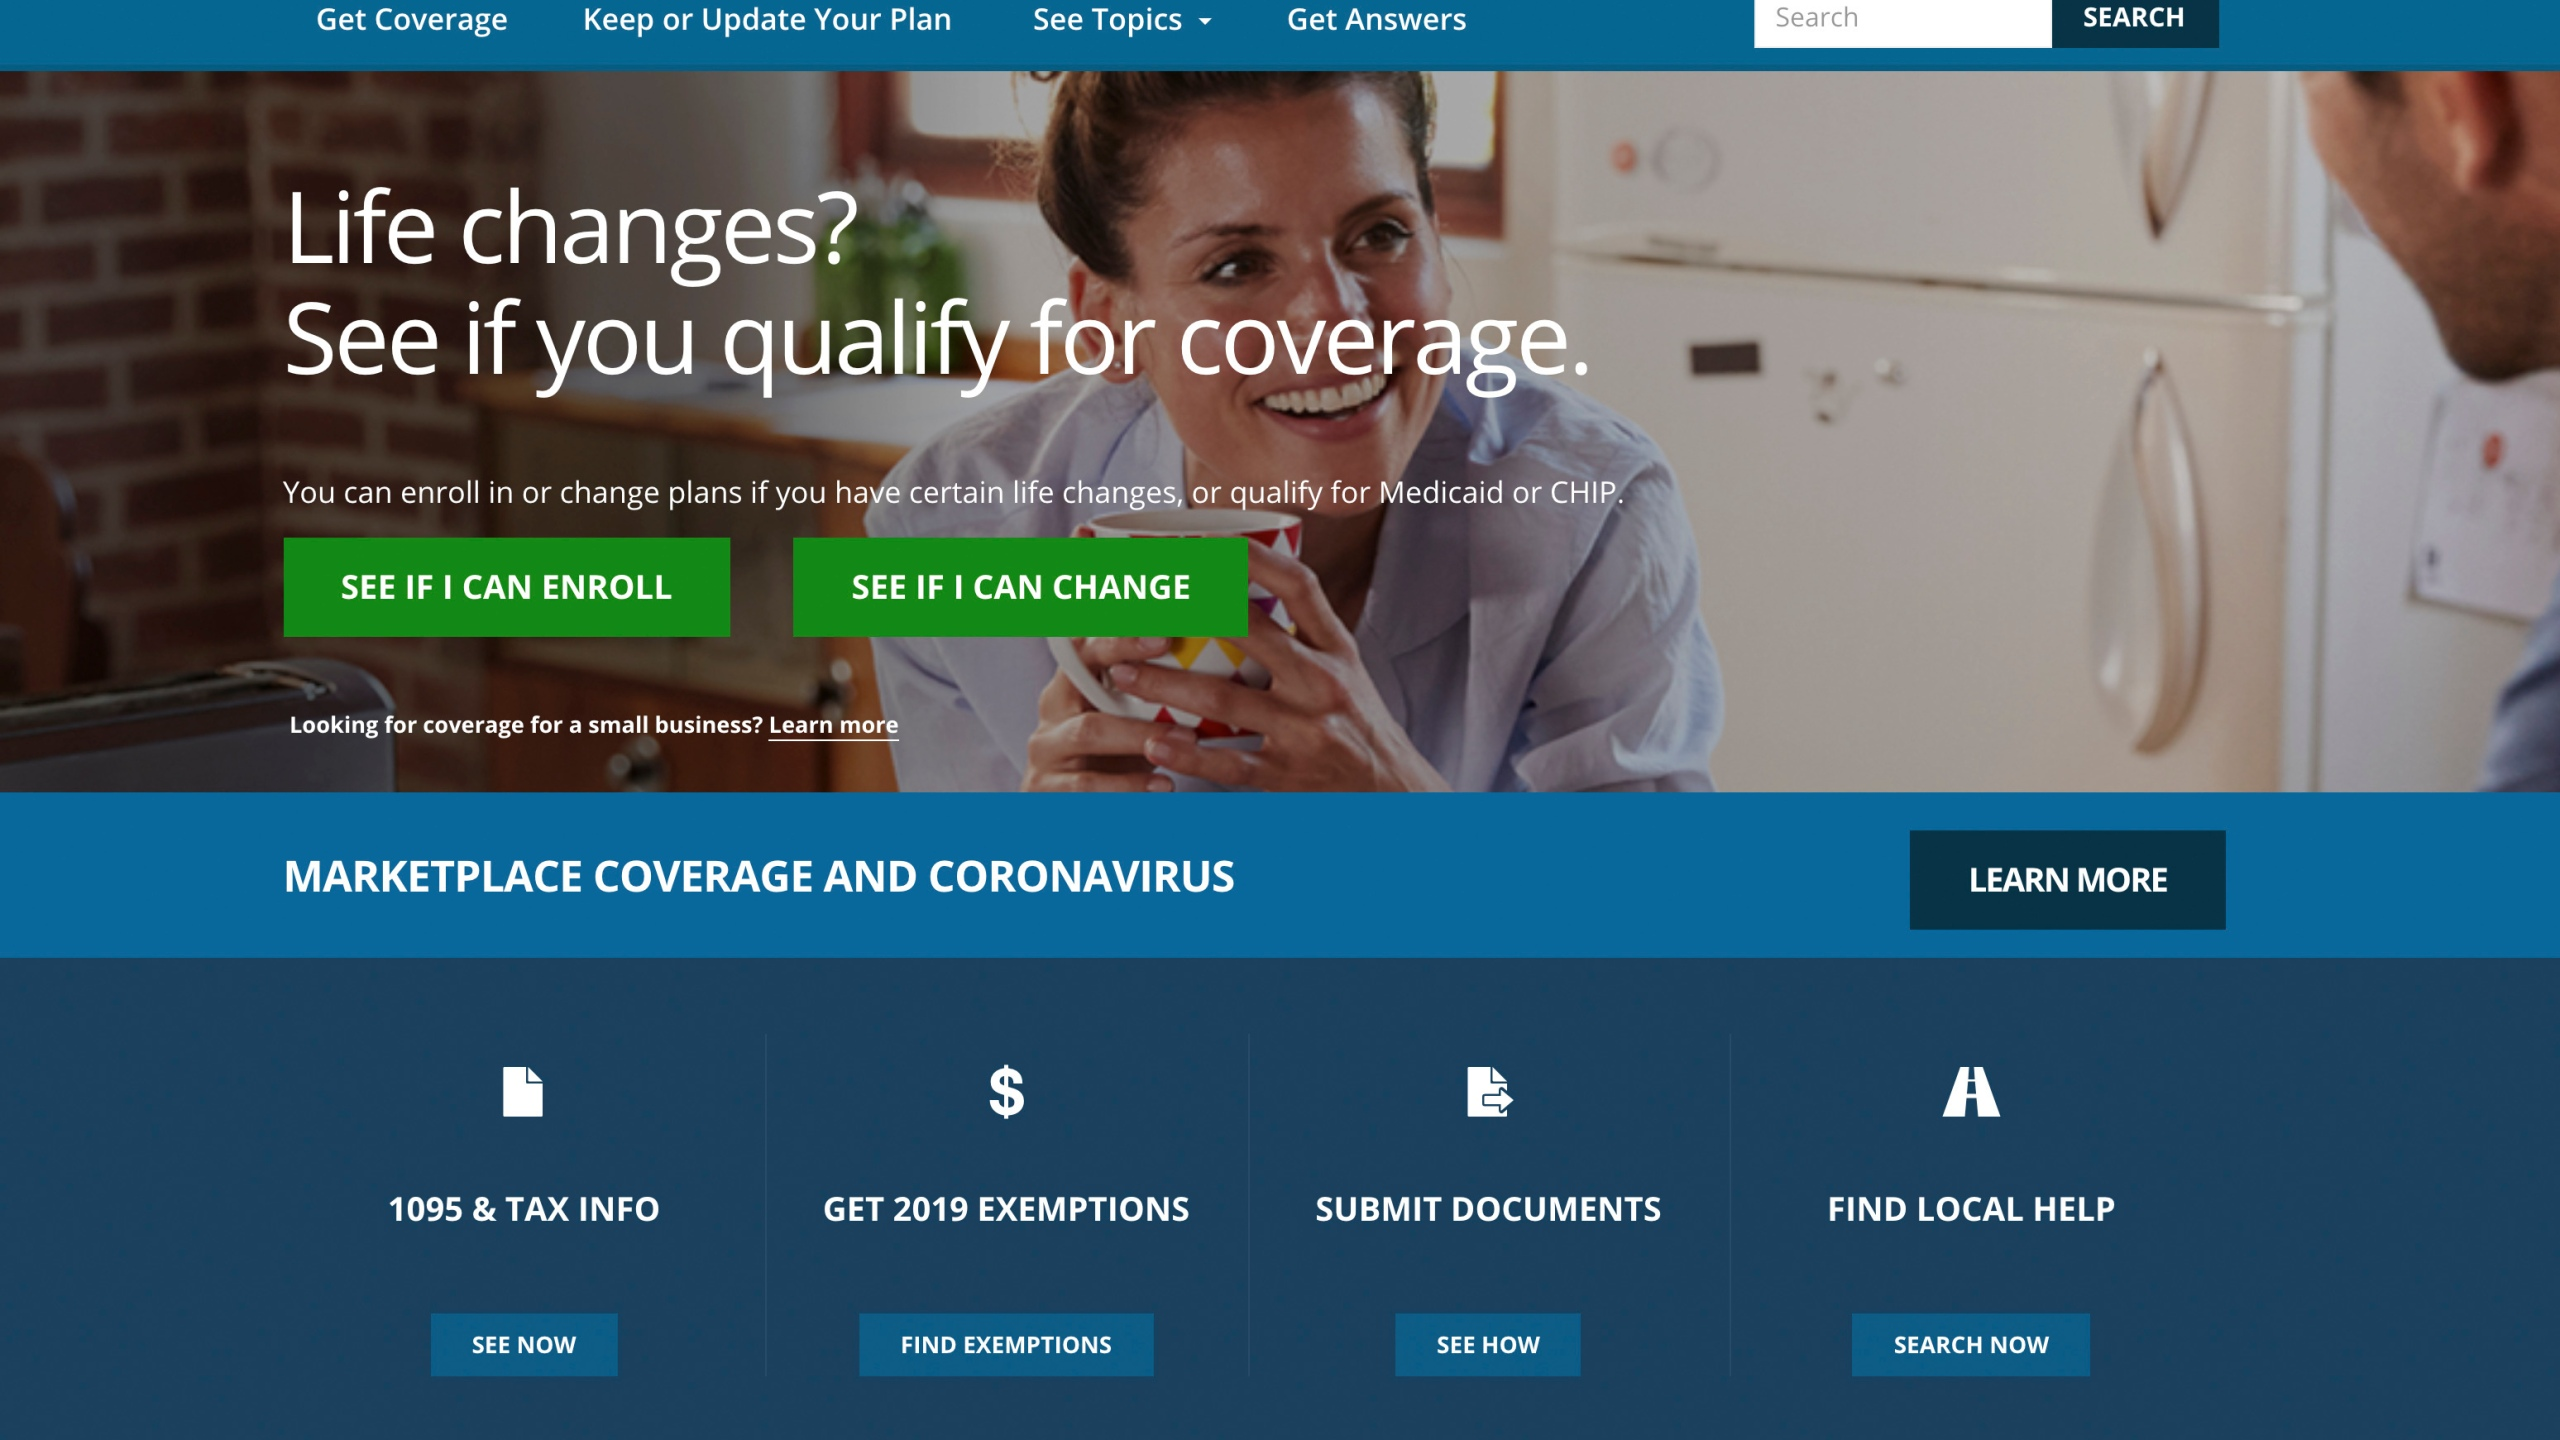 FILE - This file image provided by U.S. Centers for Medicare & Medicaid Service shows the website for HealthCare.gov. Many laid-off workers who lost health insurance in the coronavirus shutdown soon face the first deadlines to qualify for fallback coverage under the Affordable Care Act. (U.S. Centers for Medicare & Medicaid Service via AP, File)